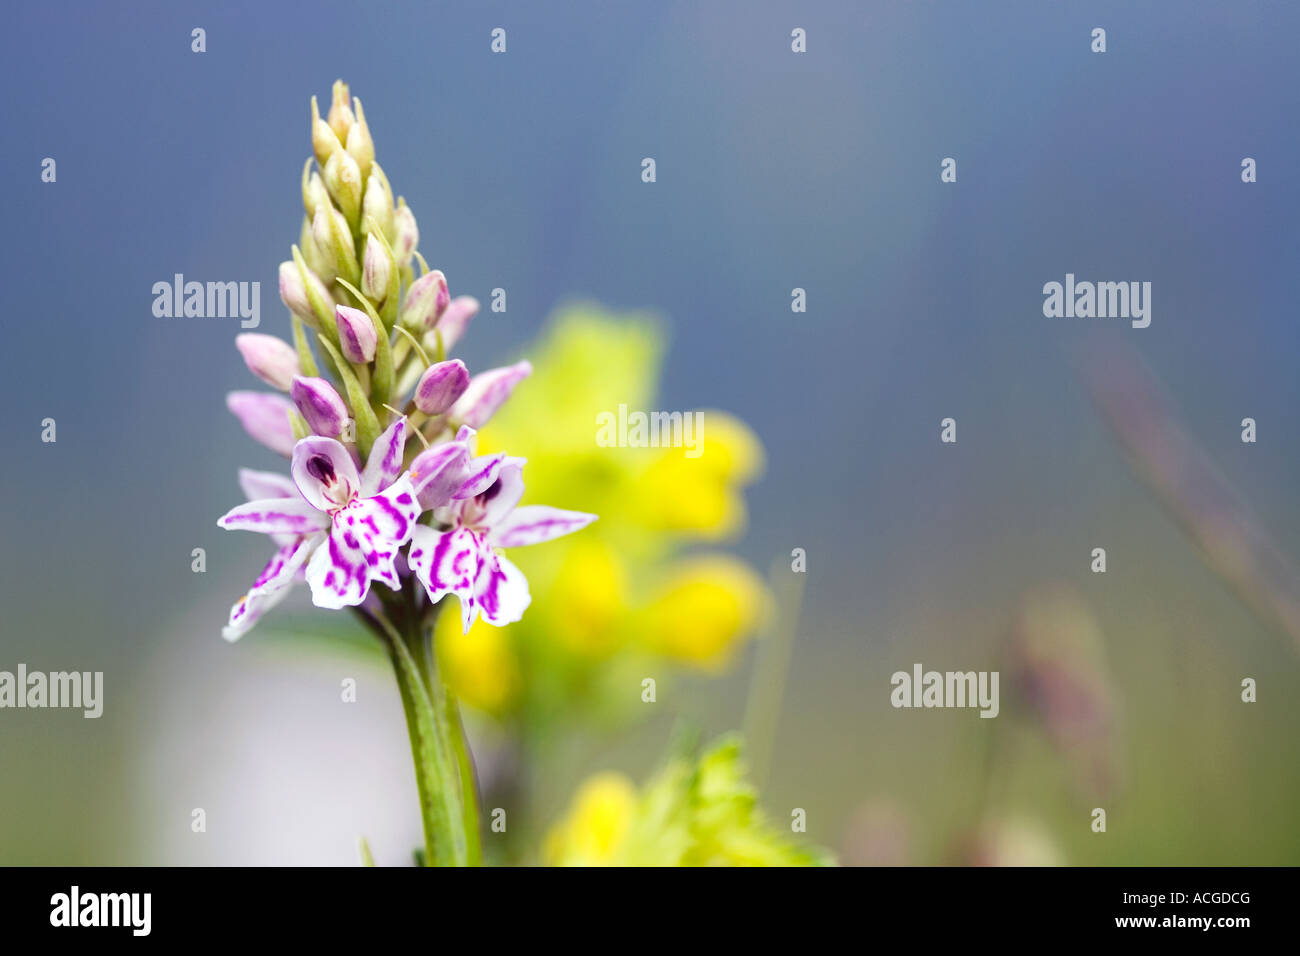 Dactylorhiza Fuchsii. Common spotted orchid in the English countryside - Stock Image